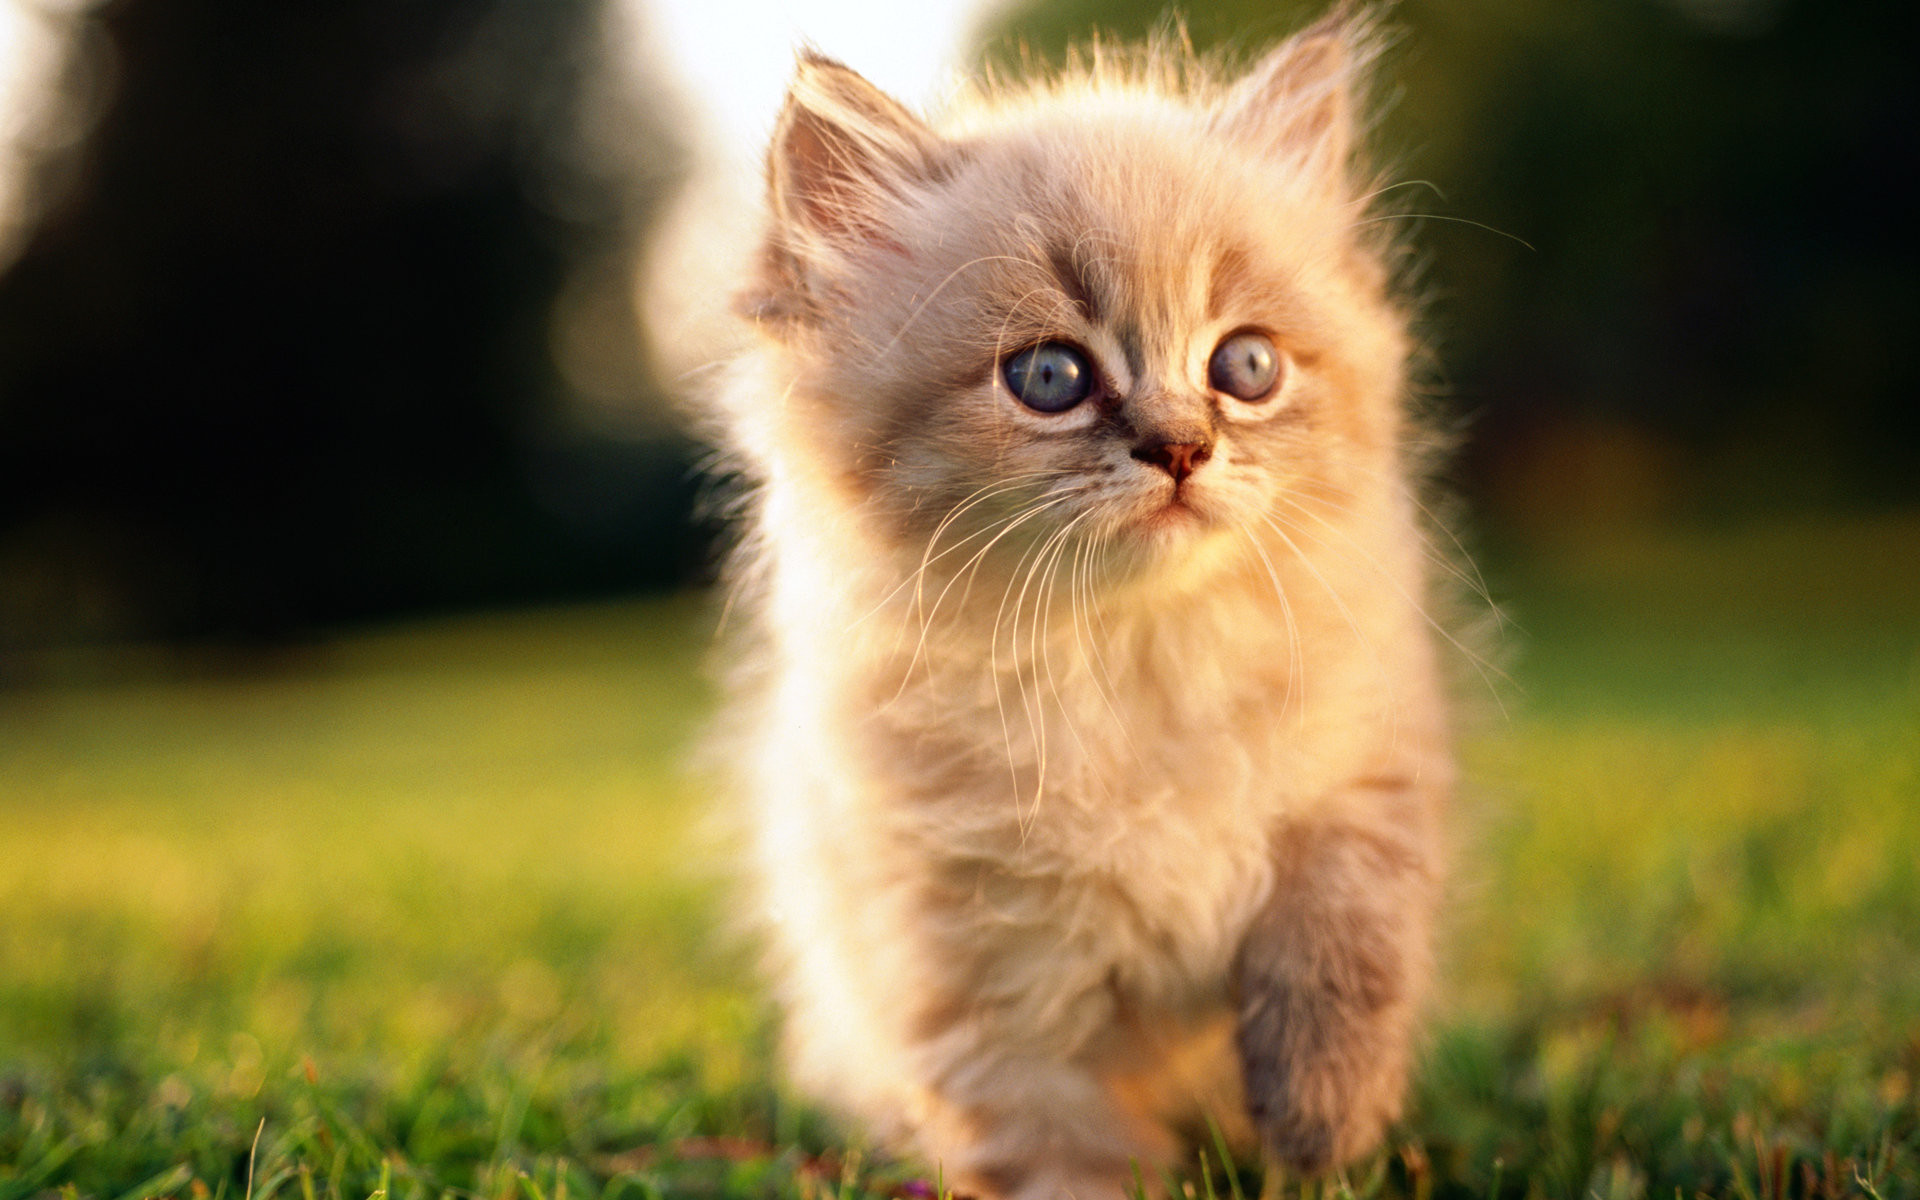 Res: 1920x1200, HD Sweet Kitty : Adorable Fluffy Baby Kittens Widescreen Wallpapers  1920*1200 Wallpaper 24